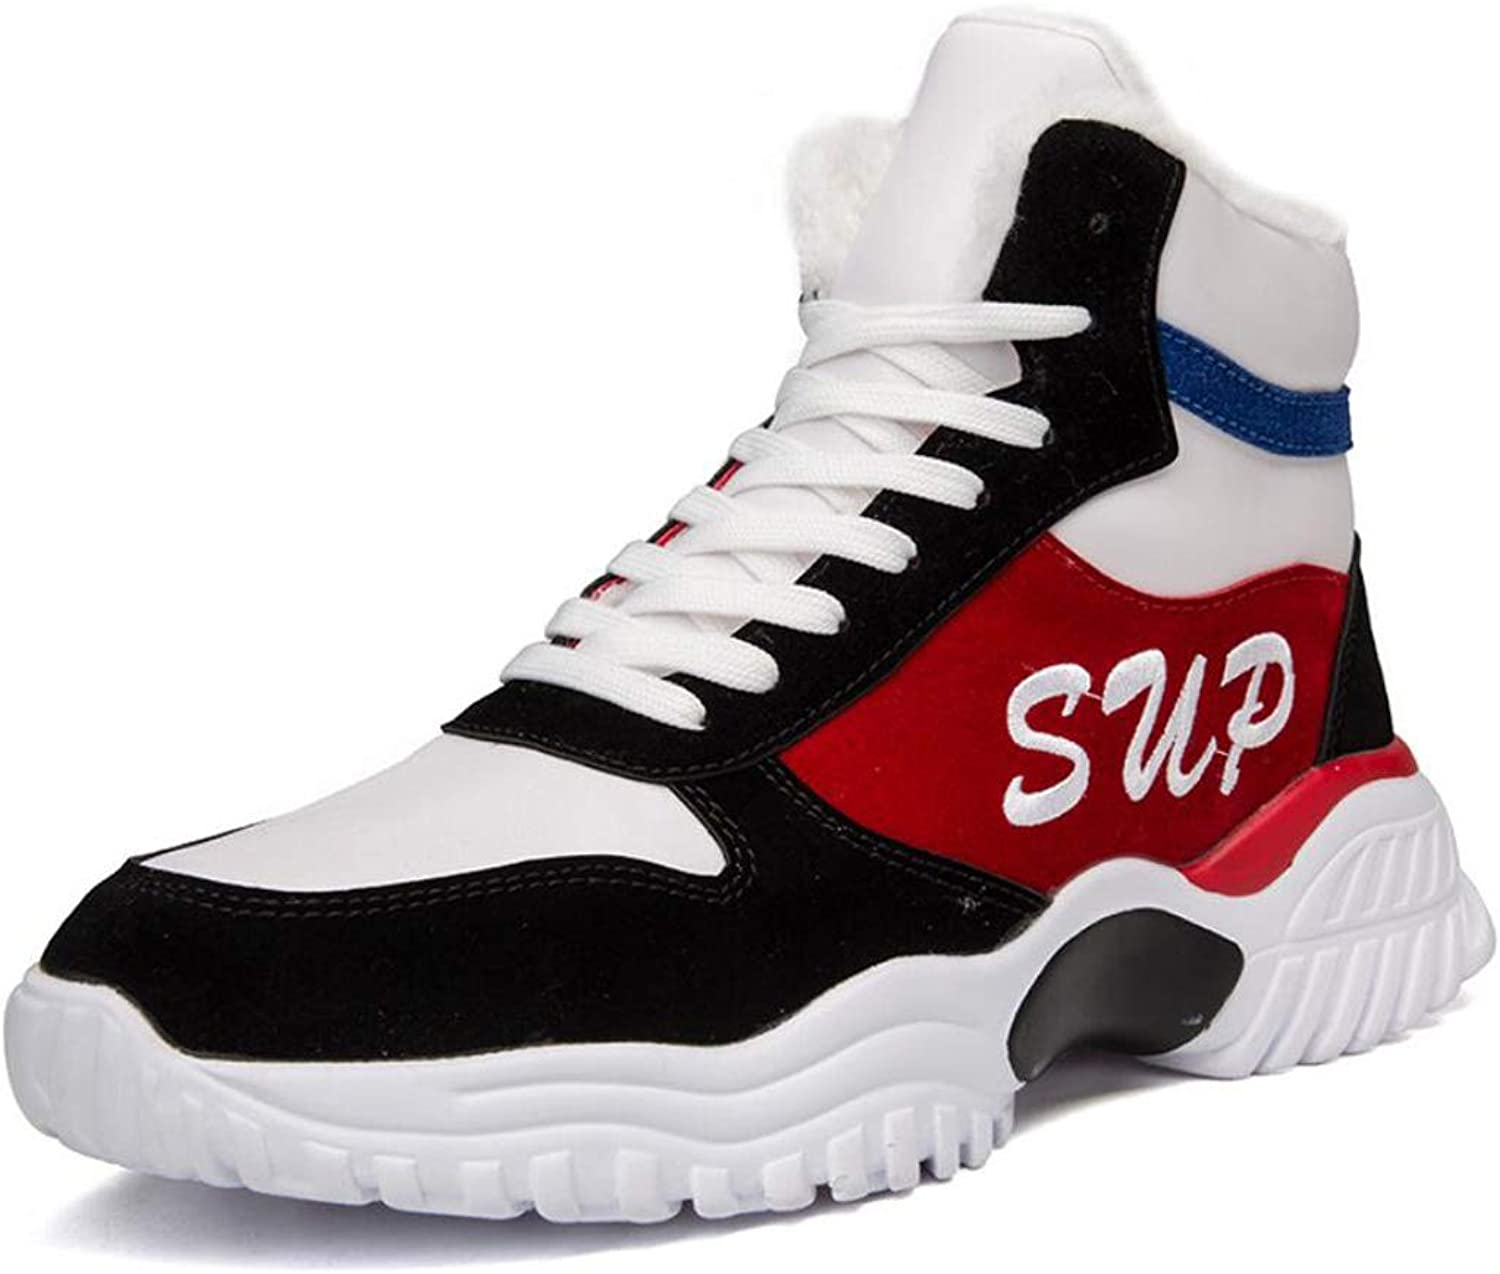 shoes Boys High Help Hip Hop National Tide shoes Rekindling Old Slab shoes Autumn Breathable Casual Sneakers 39-44